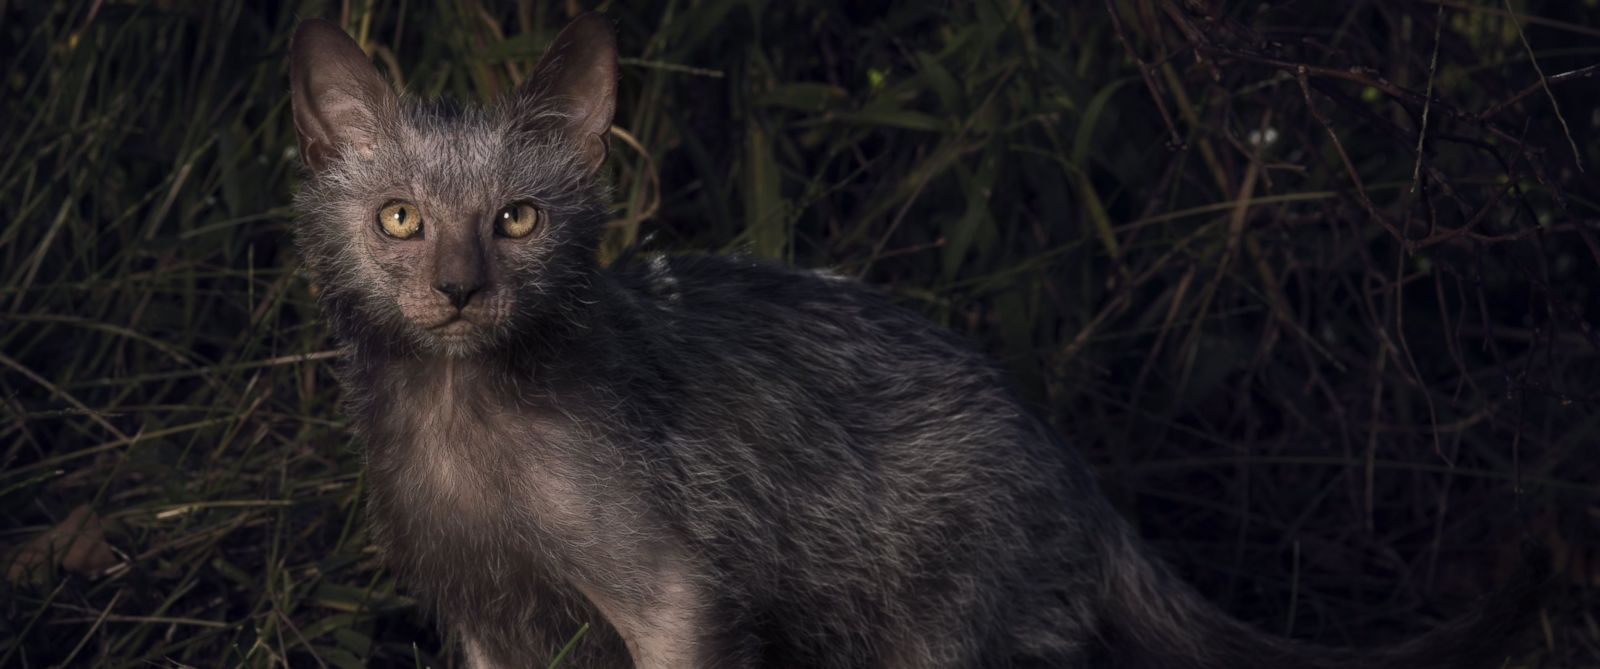 """PHOTO: The Lykoi has earned the nickname """"Werewolf Cat"""" because they look like werewolves and have dog-like personalities."""